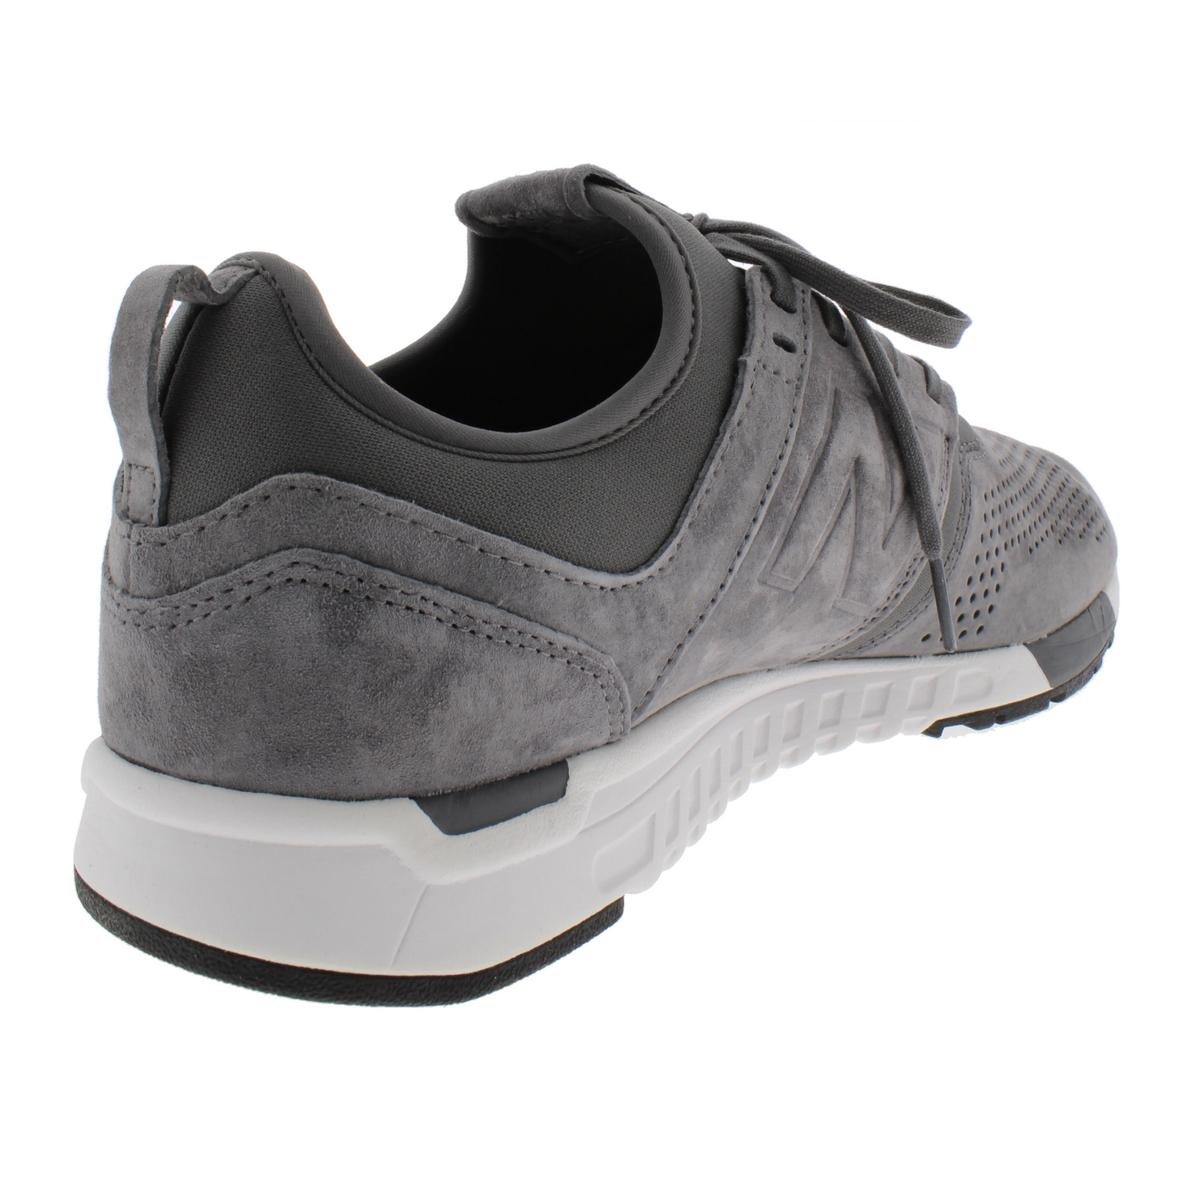 New-Balance-Mens-247-Suede-Lifestyle-Trainer-Running-Shoes-Athletic-BHFO-3803 thumbnail 4